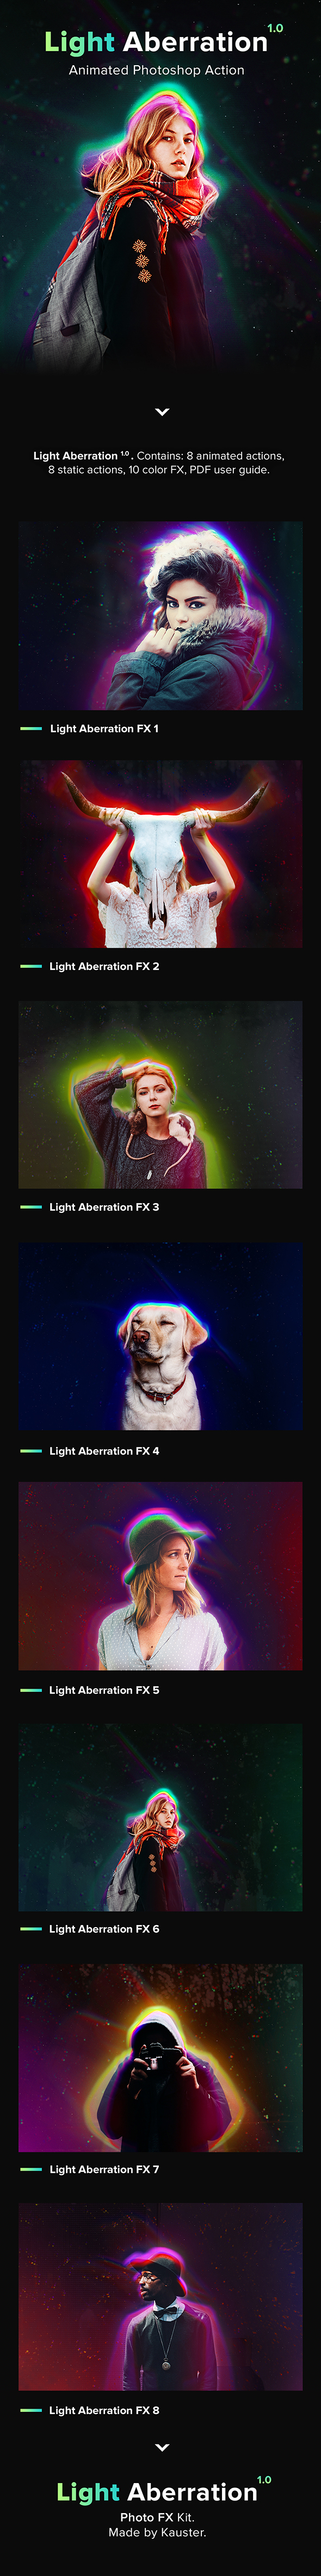 Animated Light Aberration - Photoshop Action - Photo Effects Actions